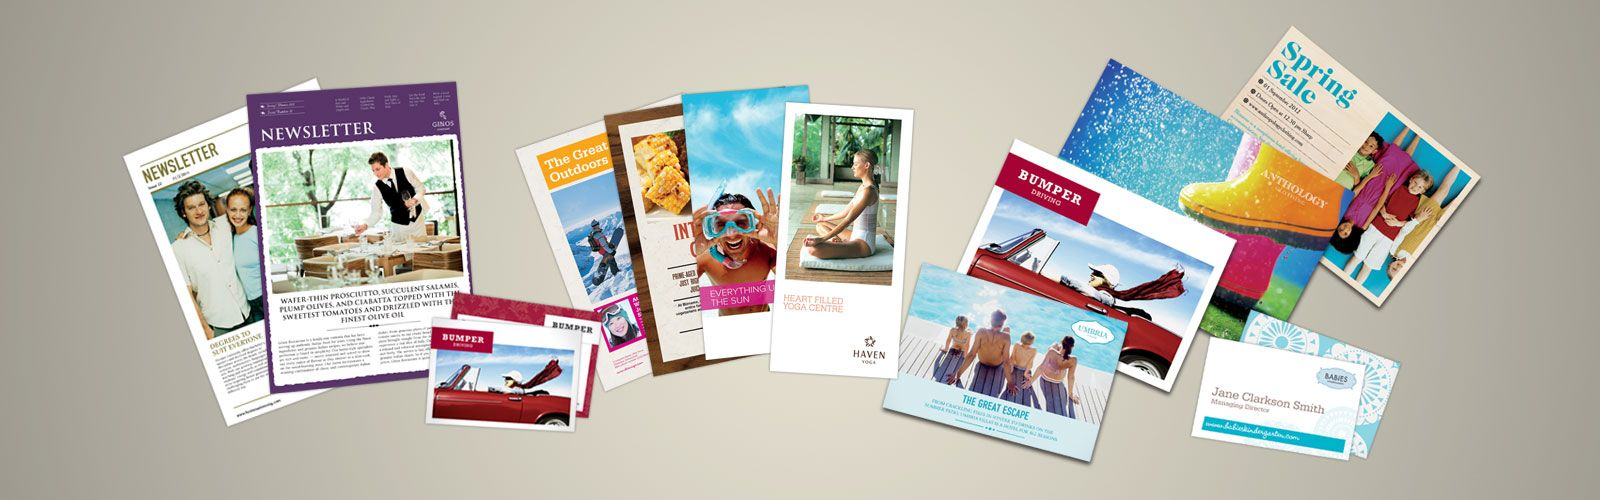 Direct mail, newsletters and labels